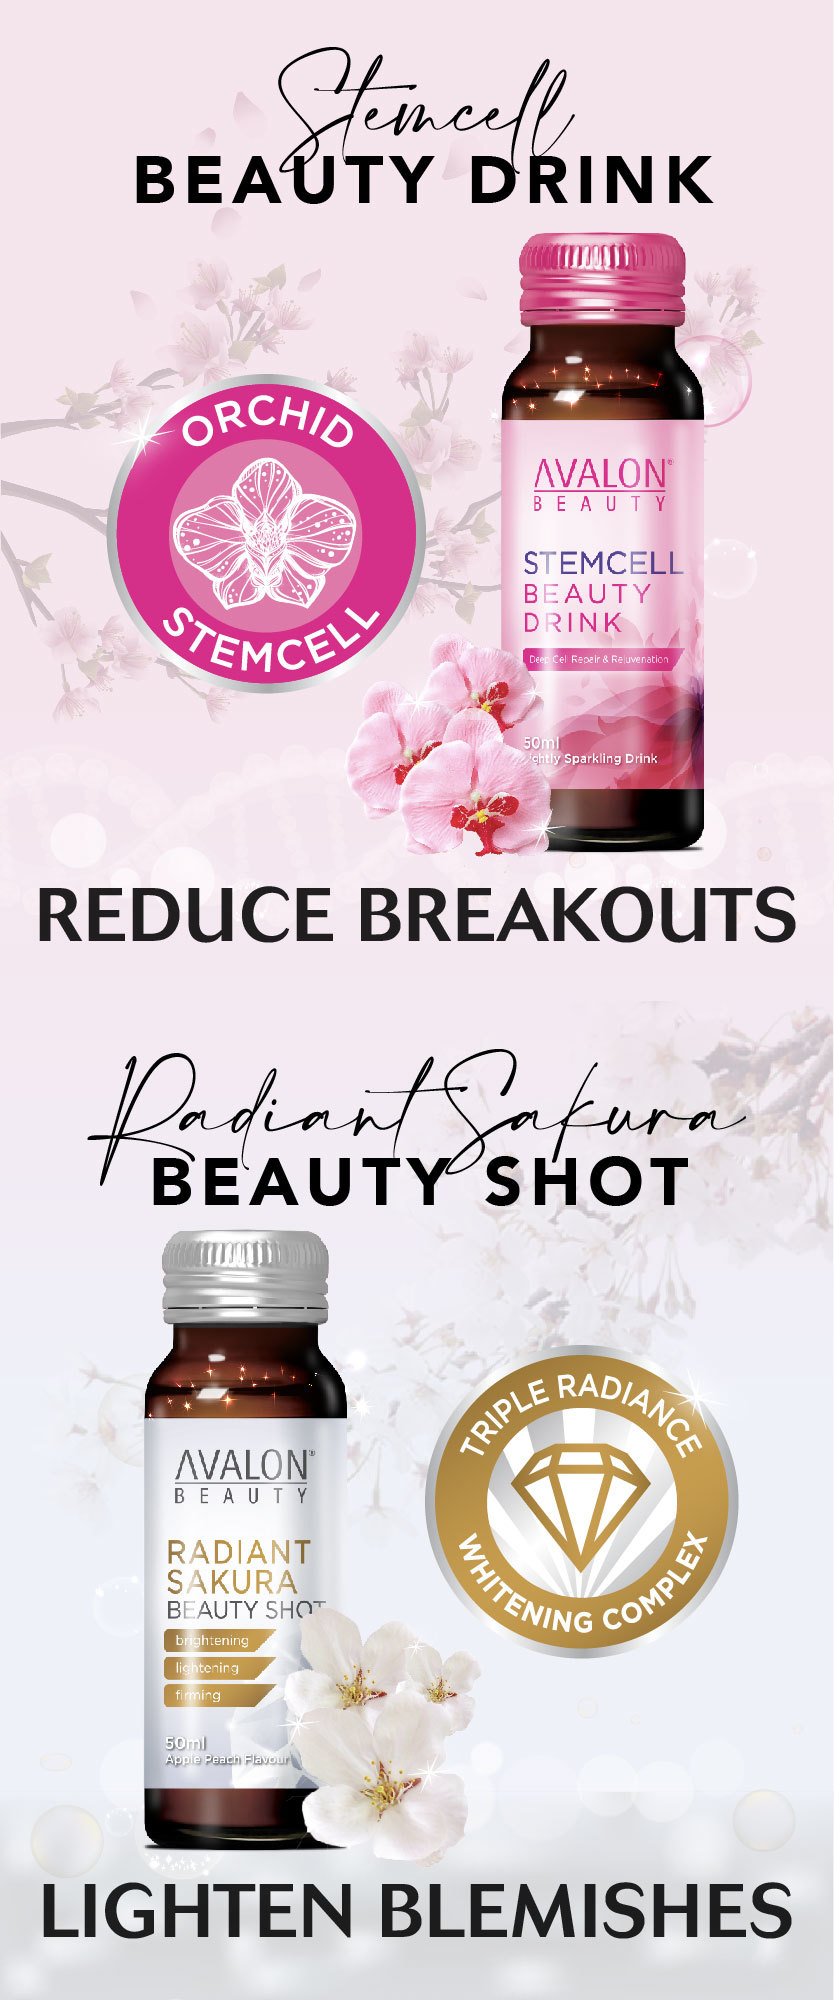 Reduce Breakouts, Lighten Blemishes